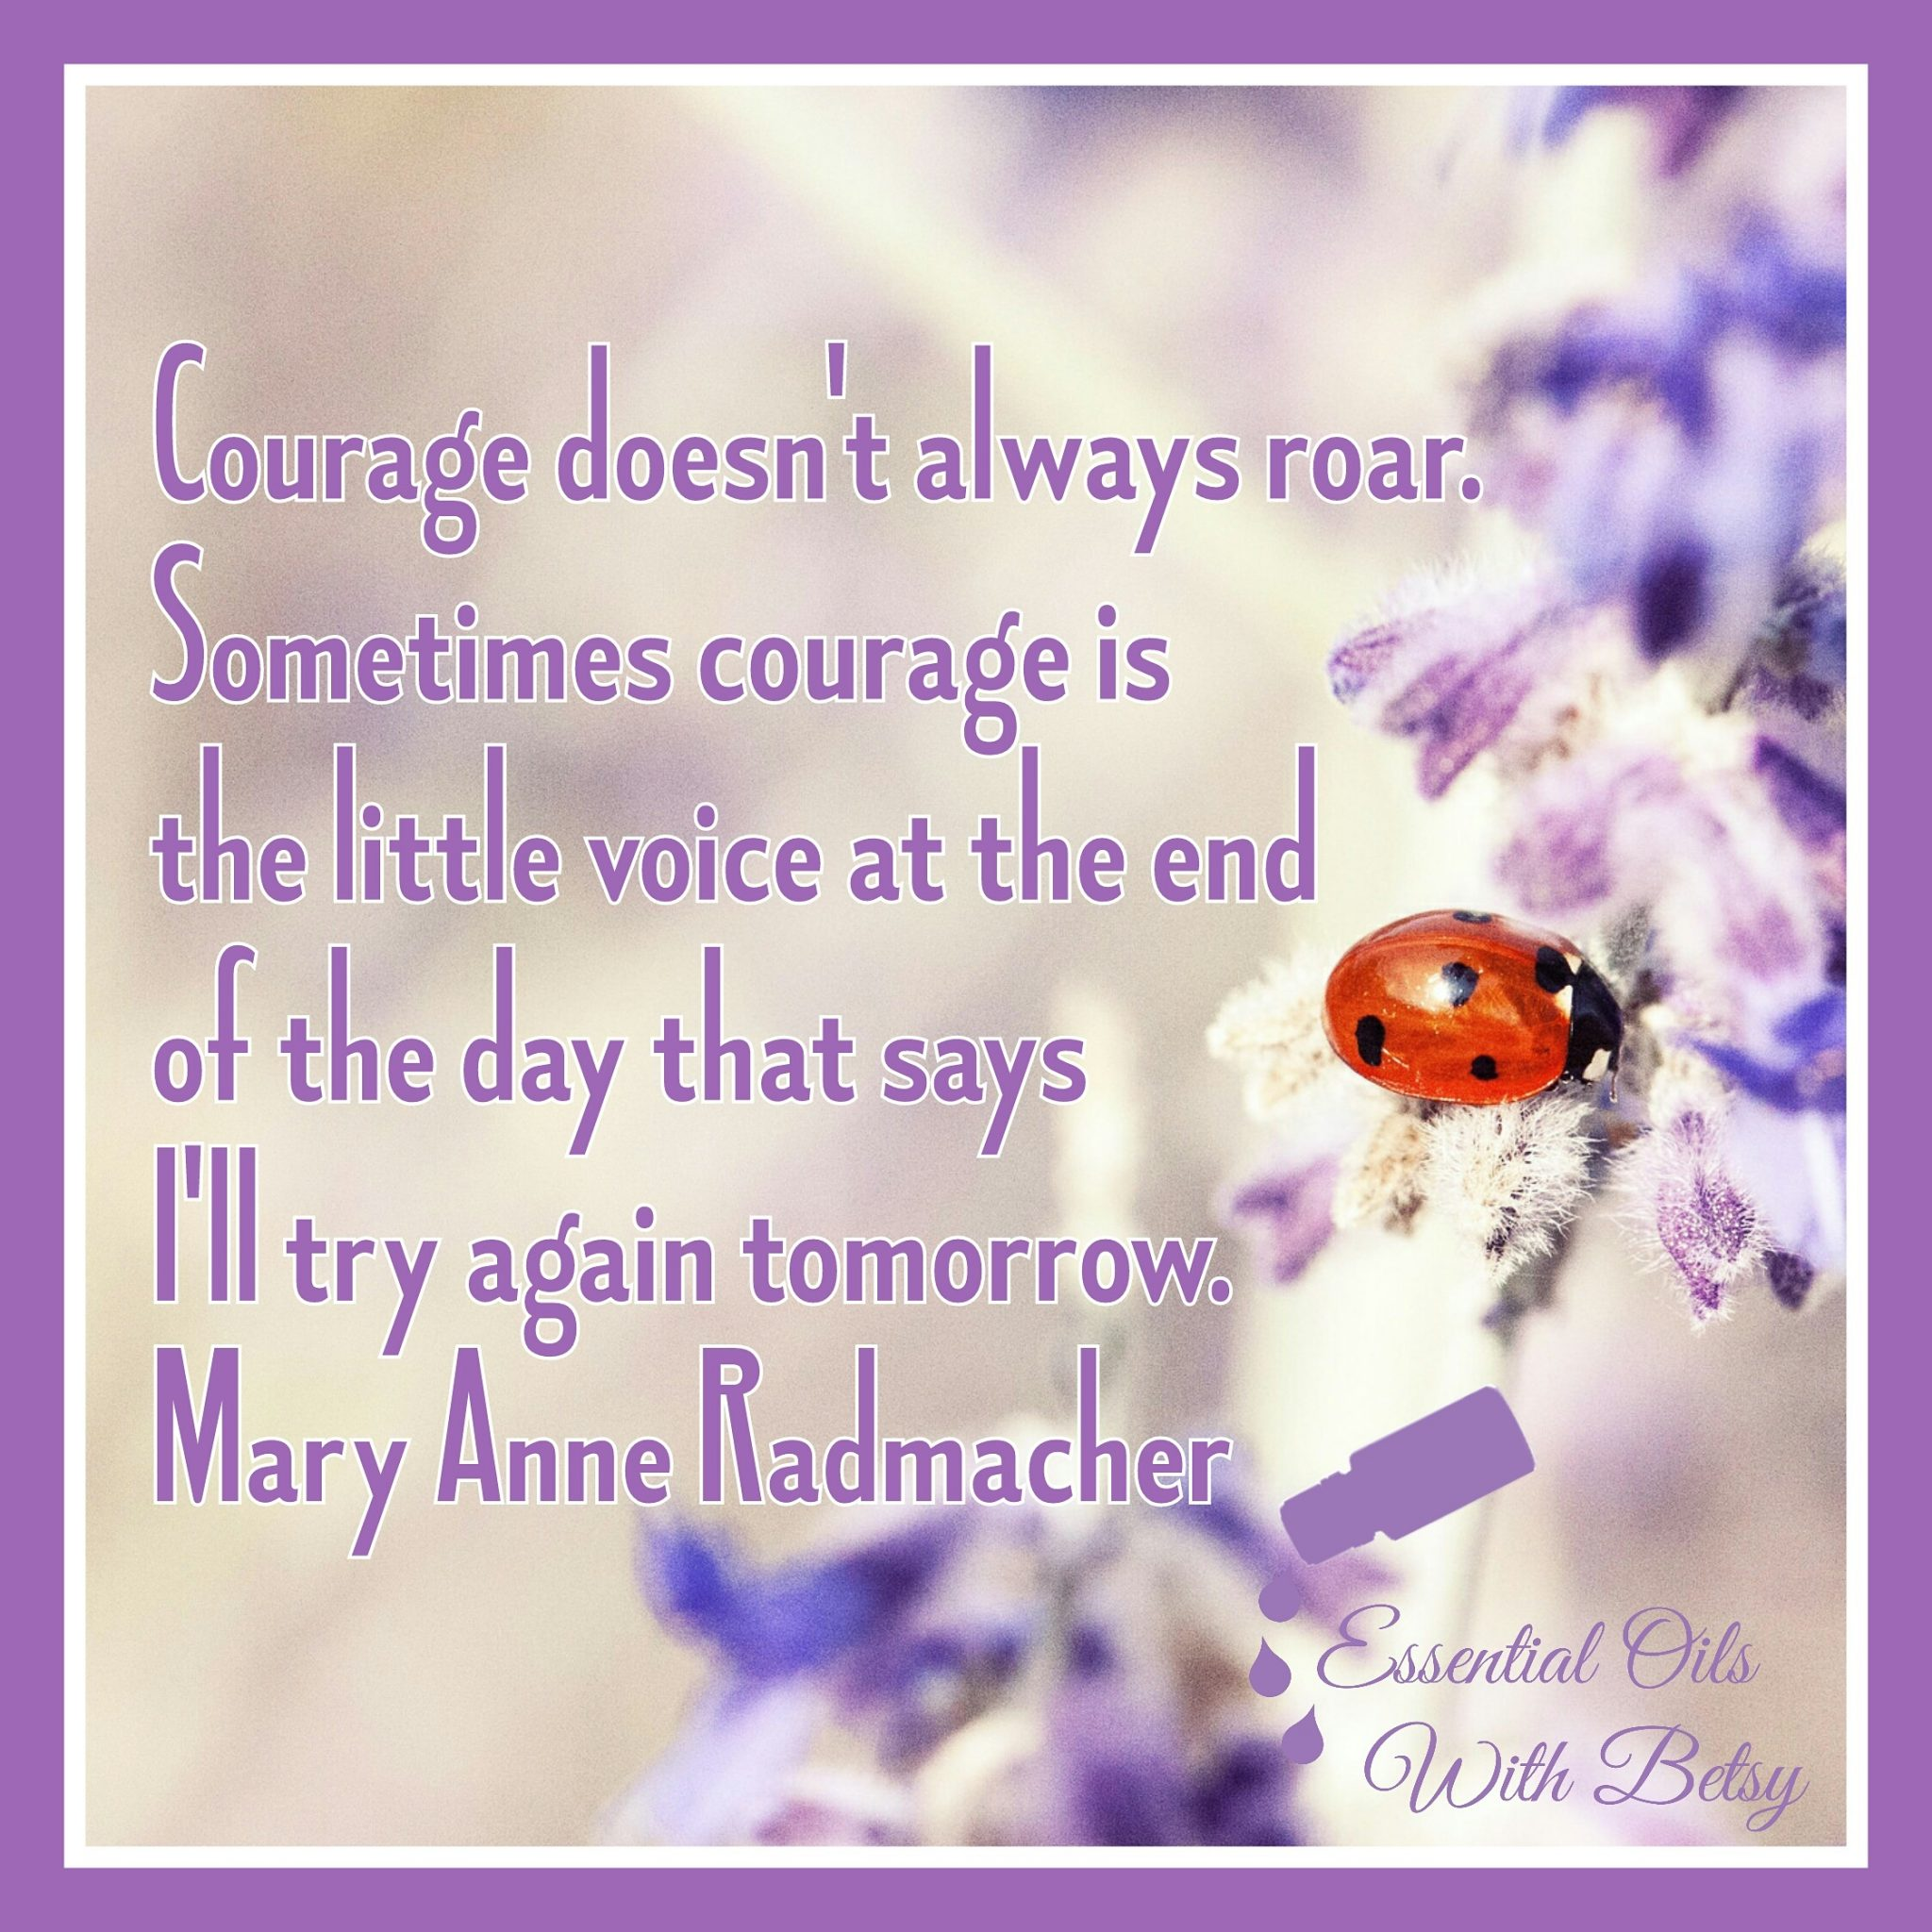 Courage doesn't always roar. Sometimes courage is the little voice at the end of the day that says I'll try again tomorrow.